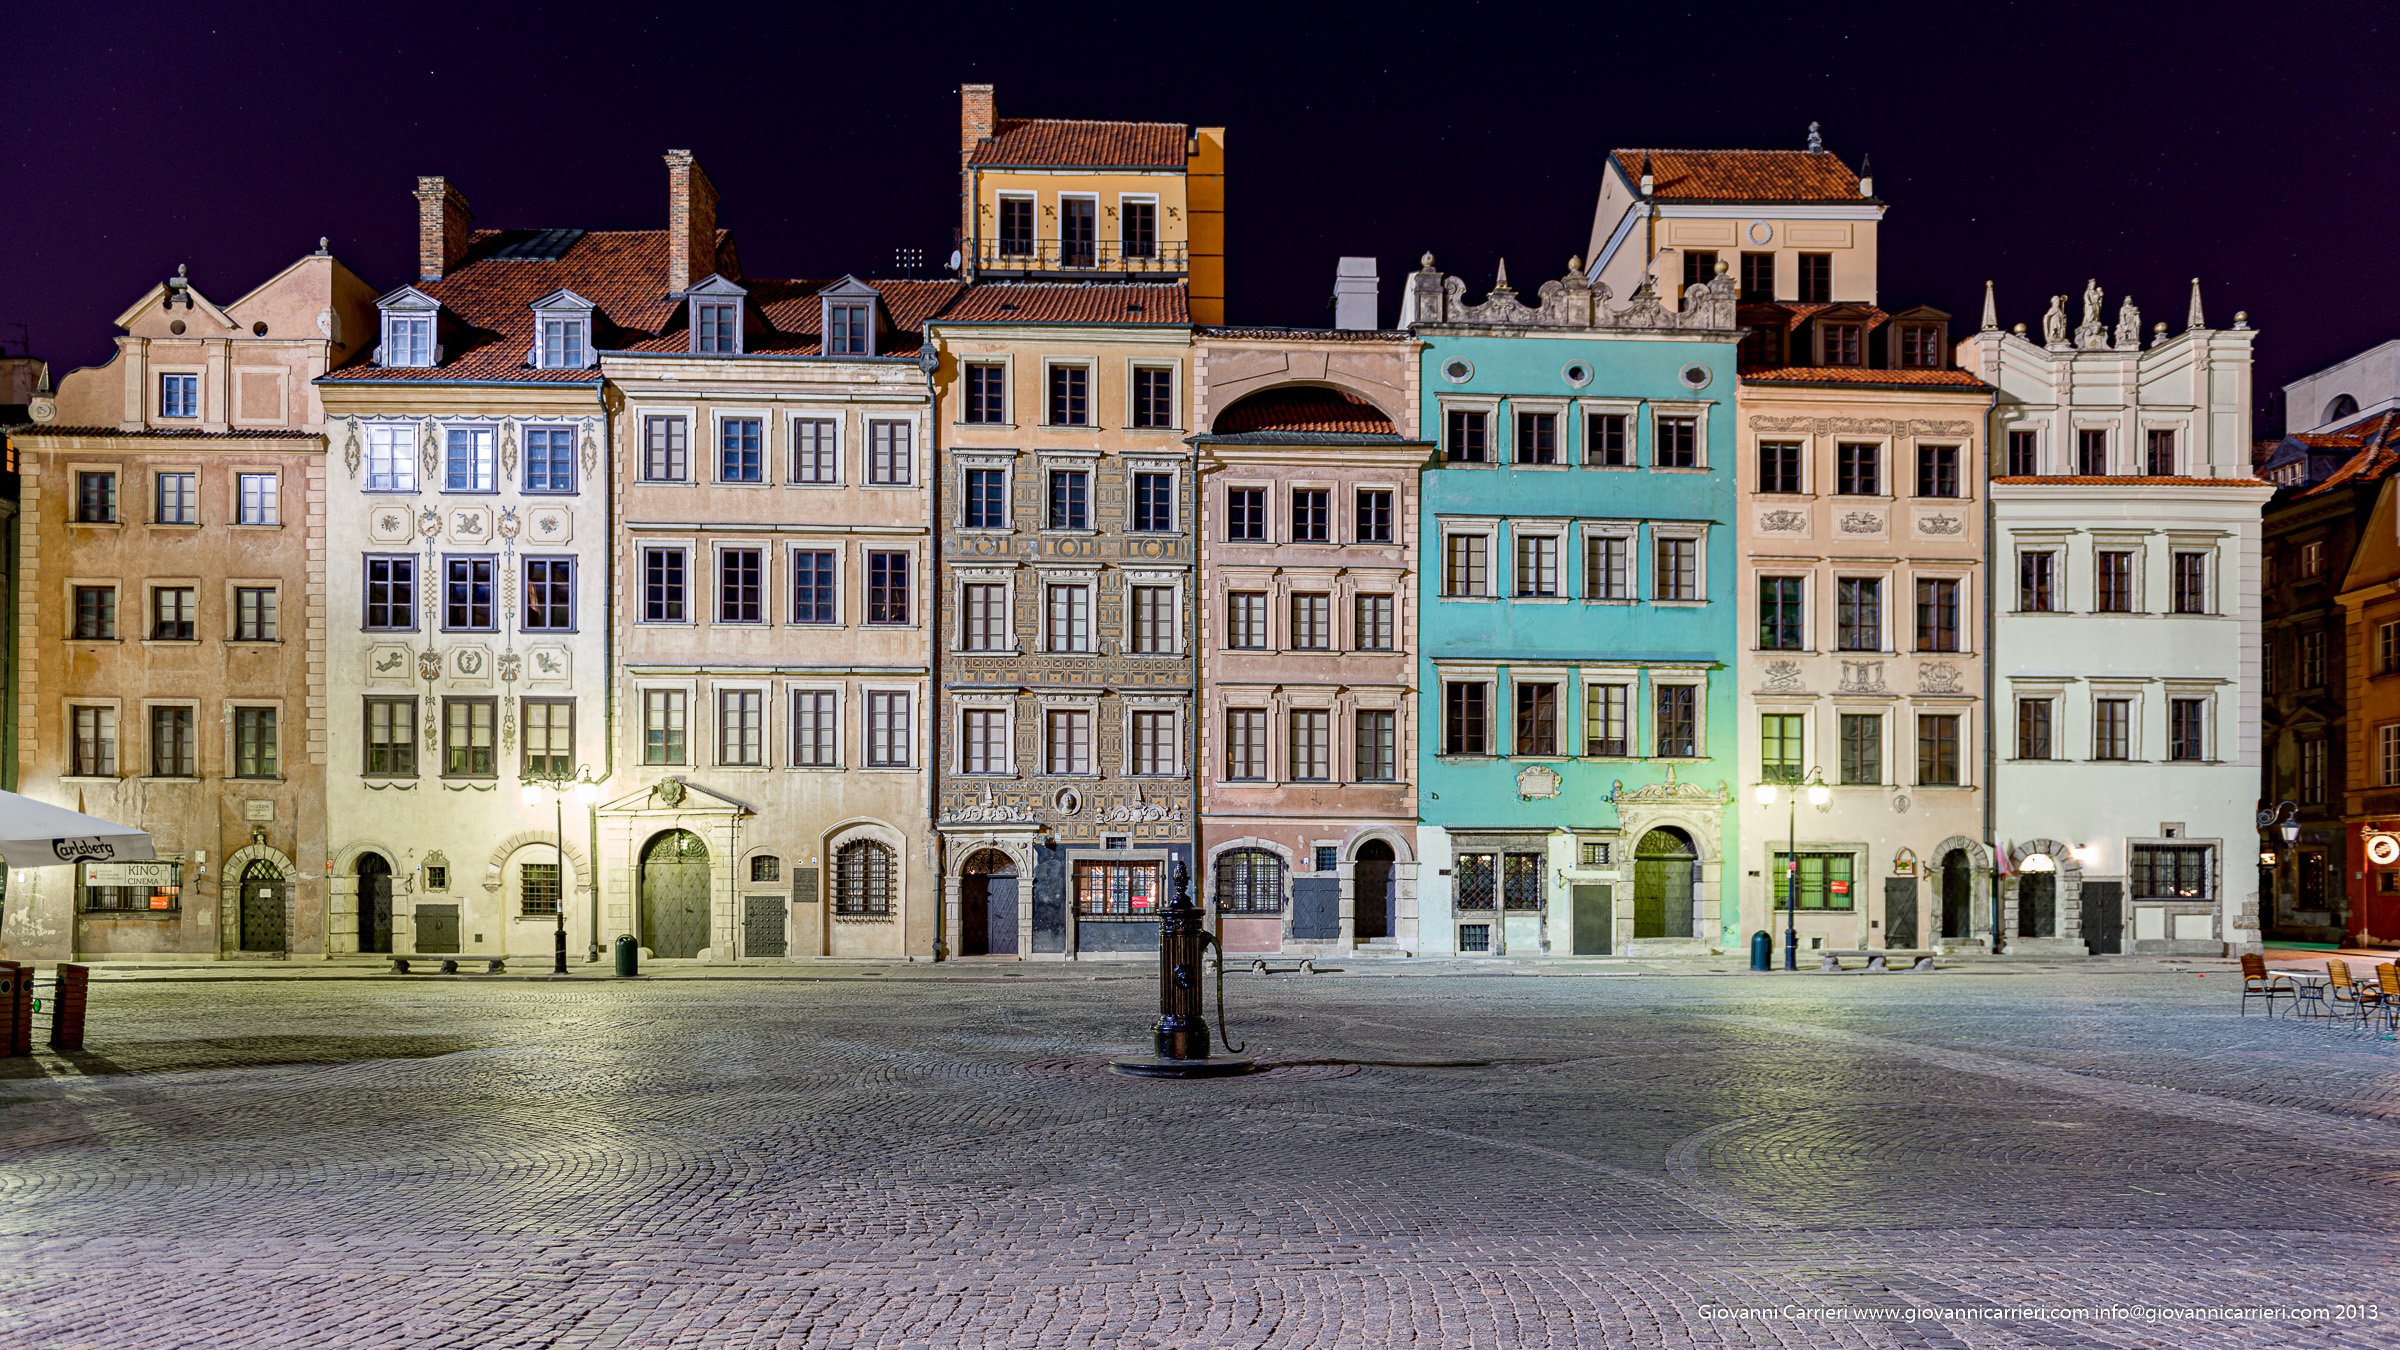 The market square - Warsaw